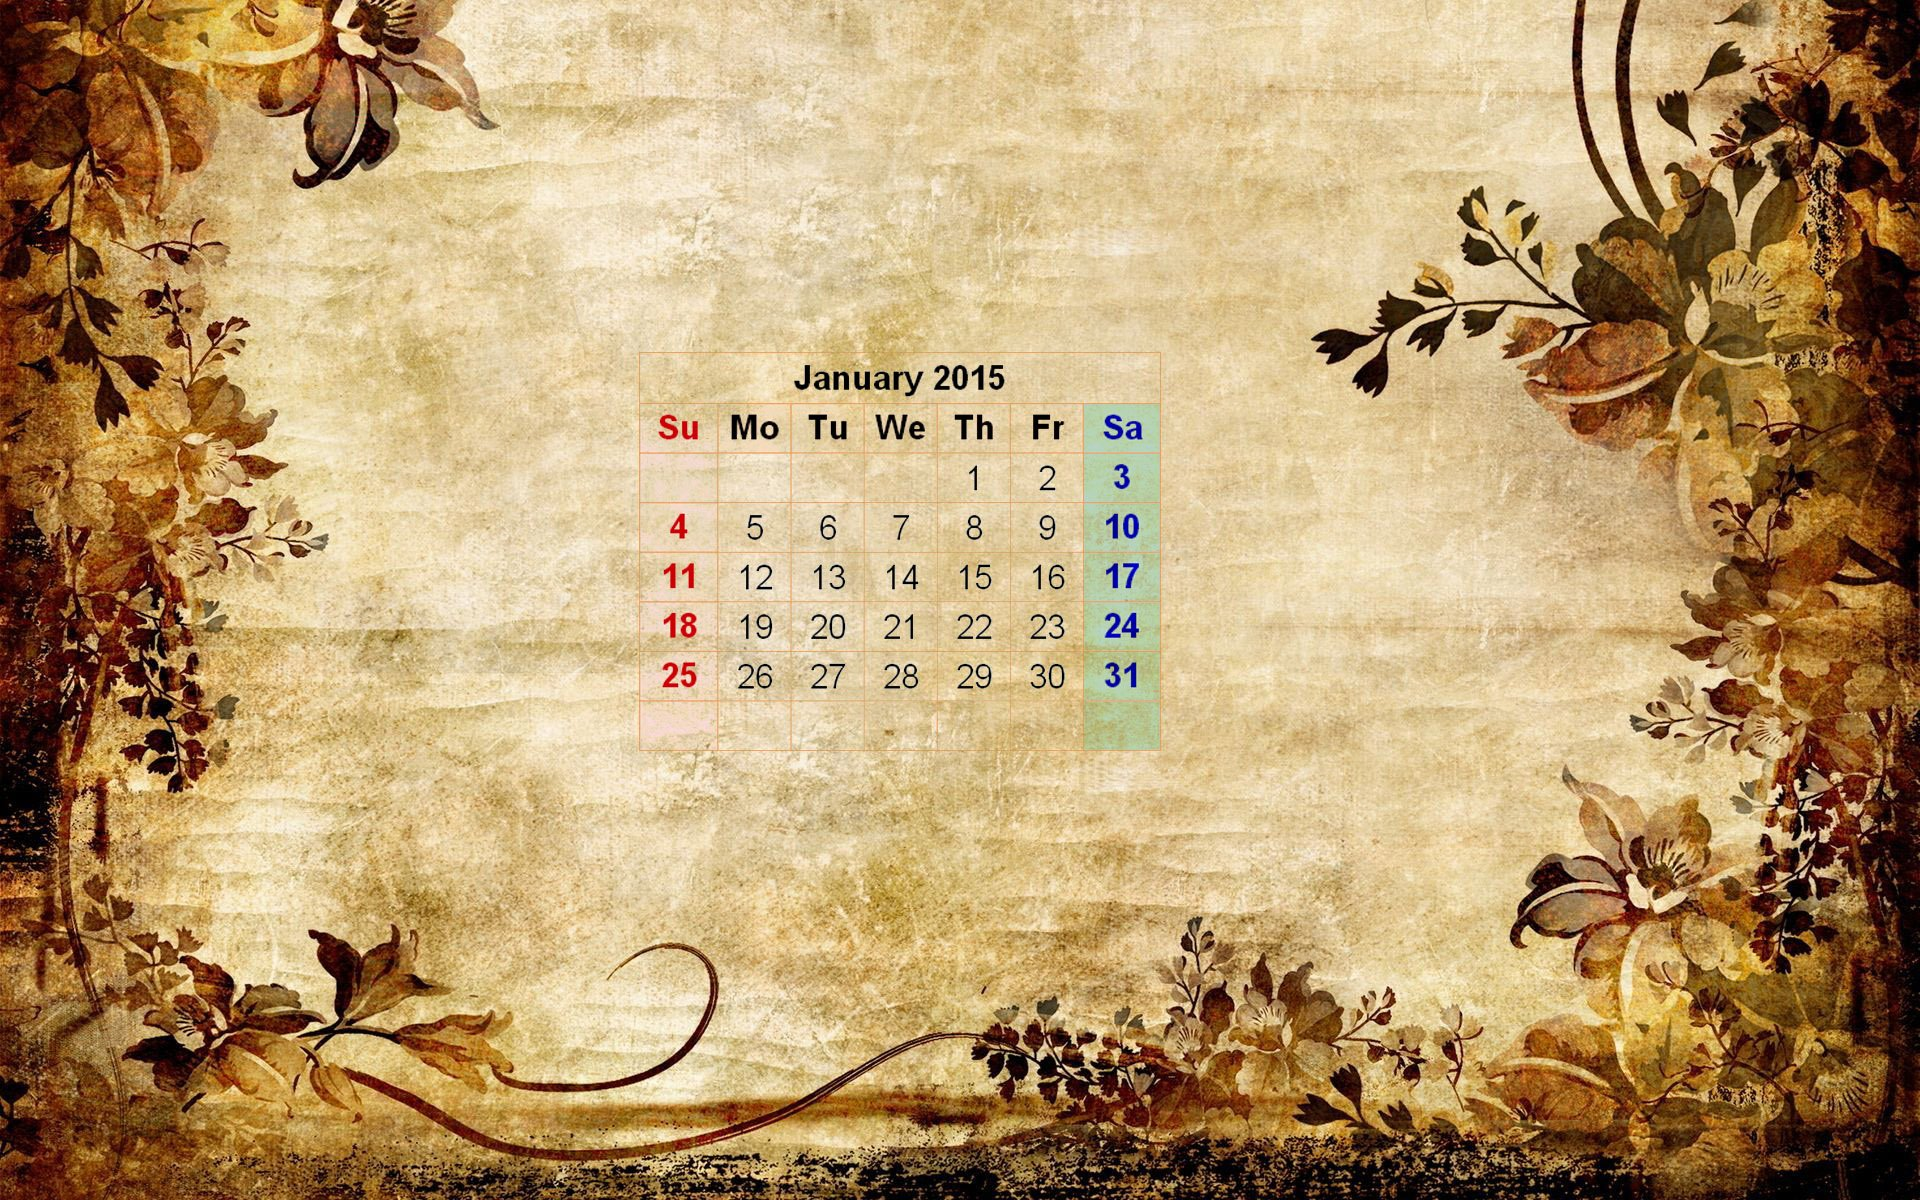 january 2015 calendar images and wallpapers happy holidays 2014